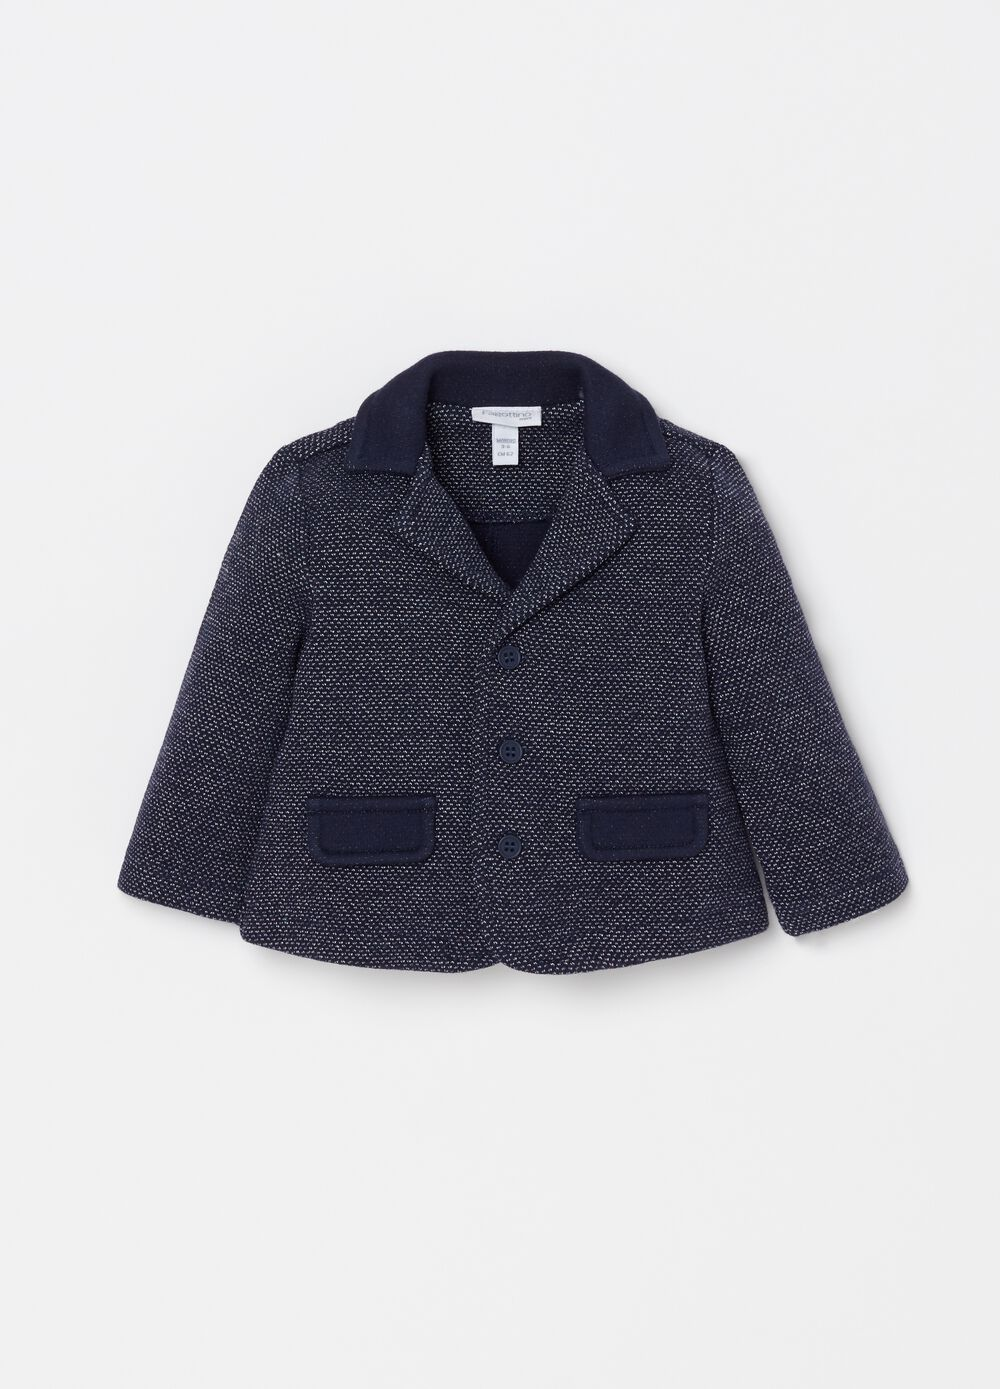 Jacket with jacquard weave and pockets